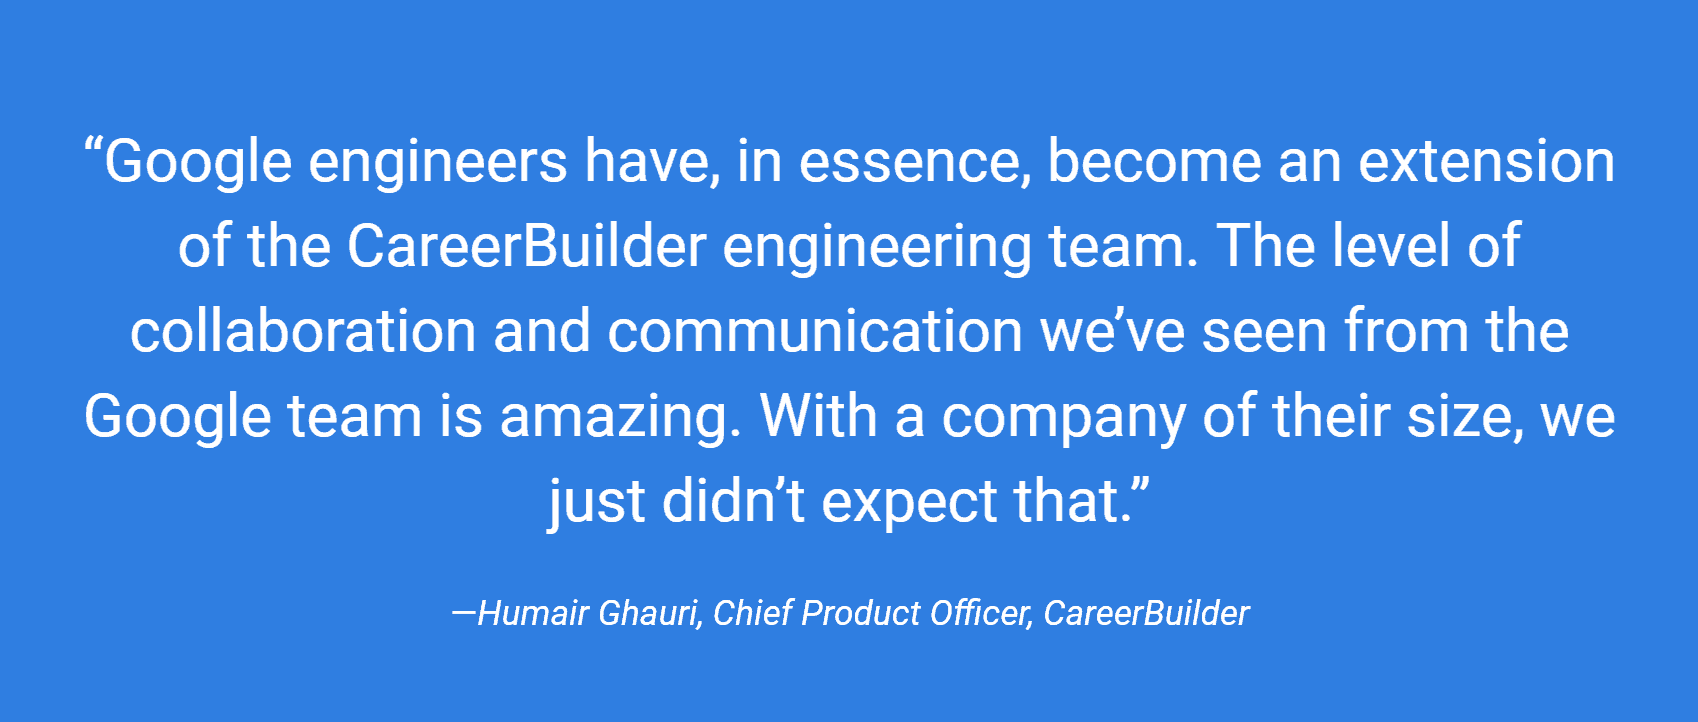 google engineers have, in essence, become an extension of the careerbuilder engineering team